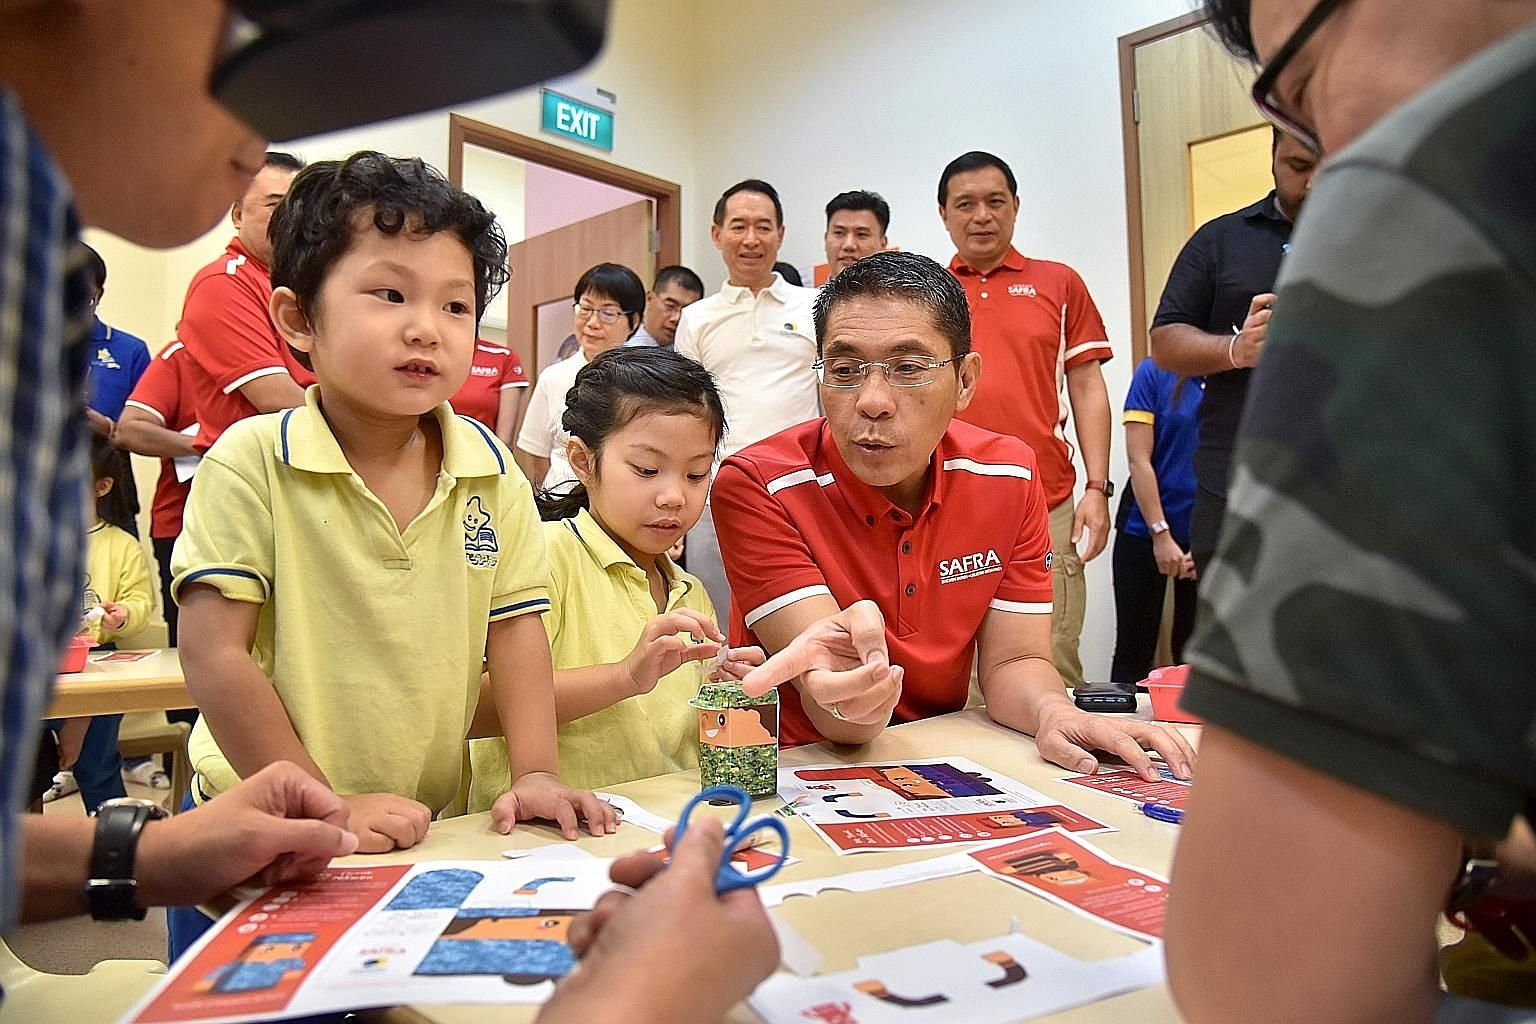 Senior Minister of State for Defence and Safra president Maliki Osman joining children at the Safra Toa Payoh NurtureStars Pre-school for an art-jamming session yesterday. Ahead of SAF Day on July 1, more than 70,000 children from some 500 pre-school